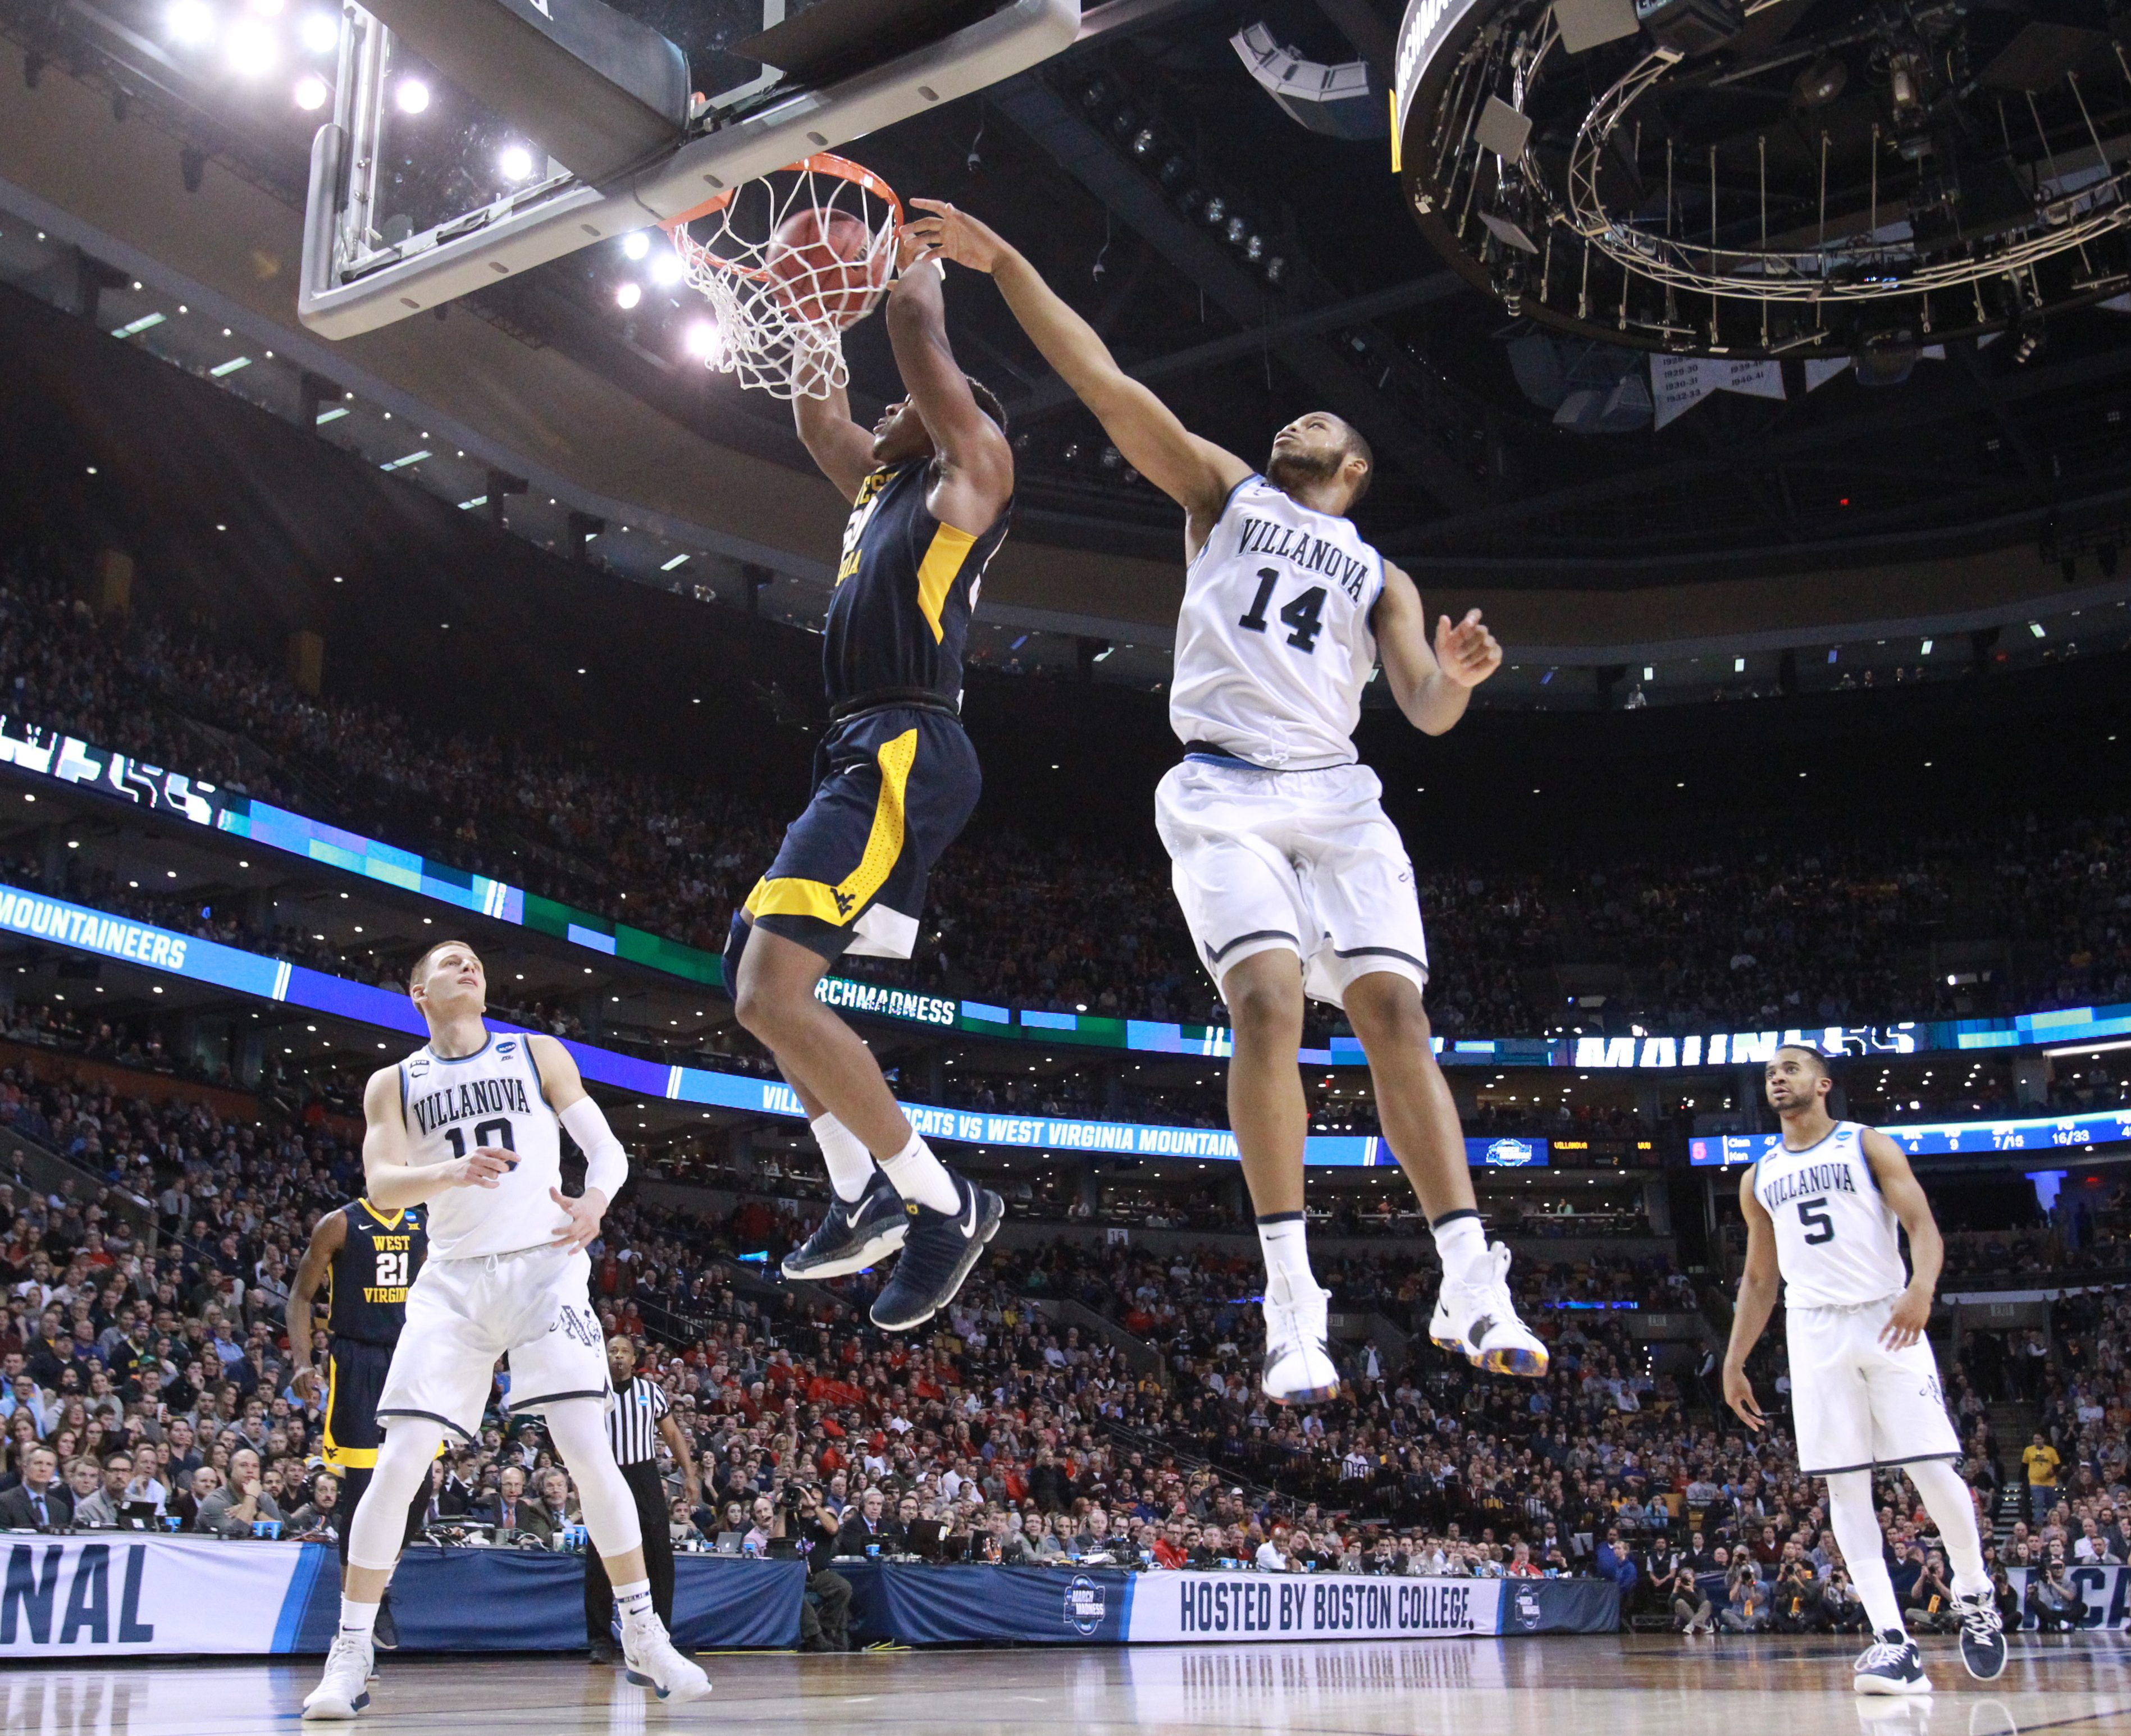 Omari Spellman (right) trying to prevent a dunk by Sagaba Konate of West Virginia last Friday